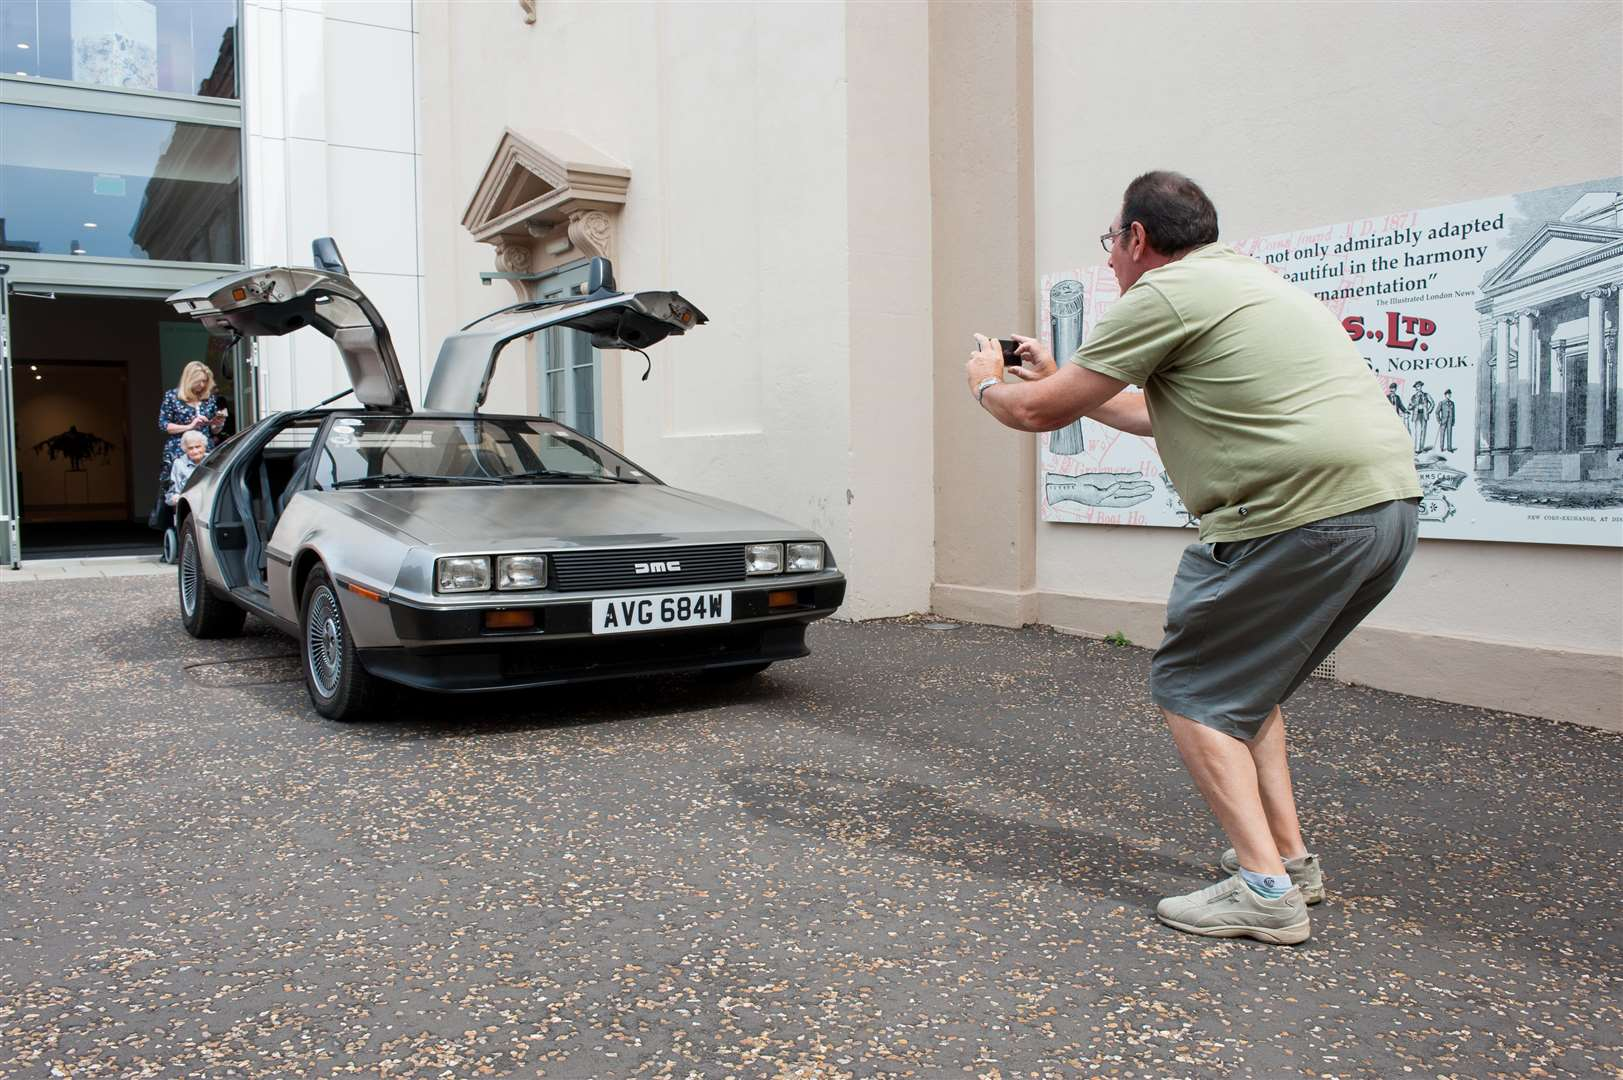 More than 100 cars from the 1920s to the 1980s 80s including a Delorean, at the Corn Hall